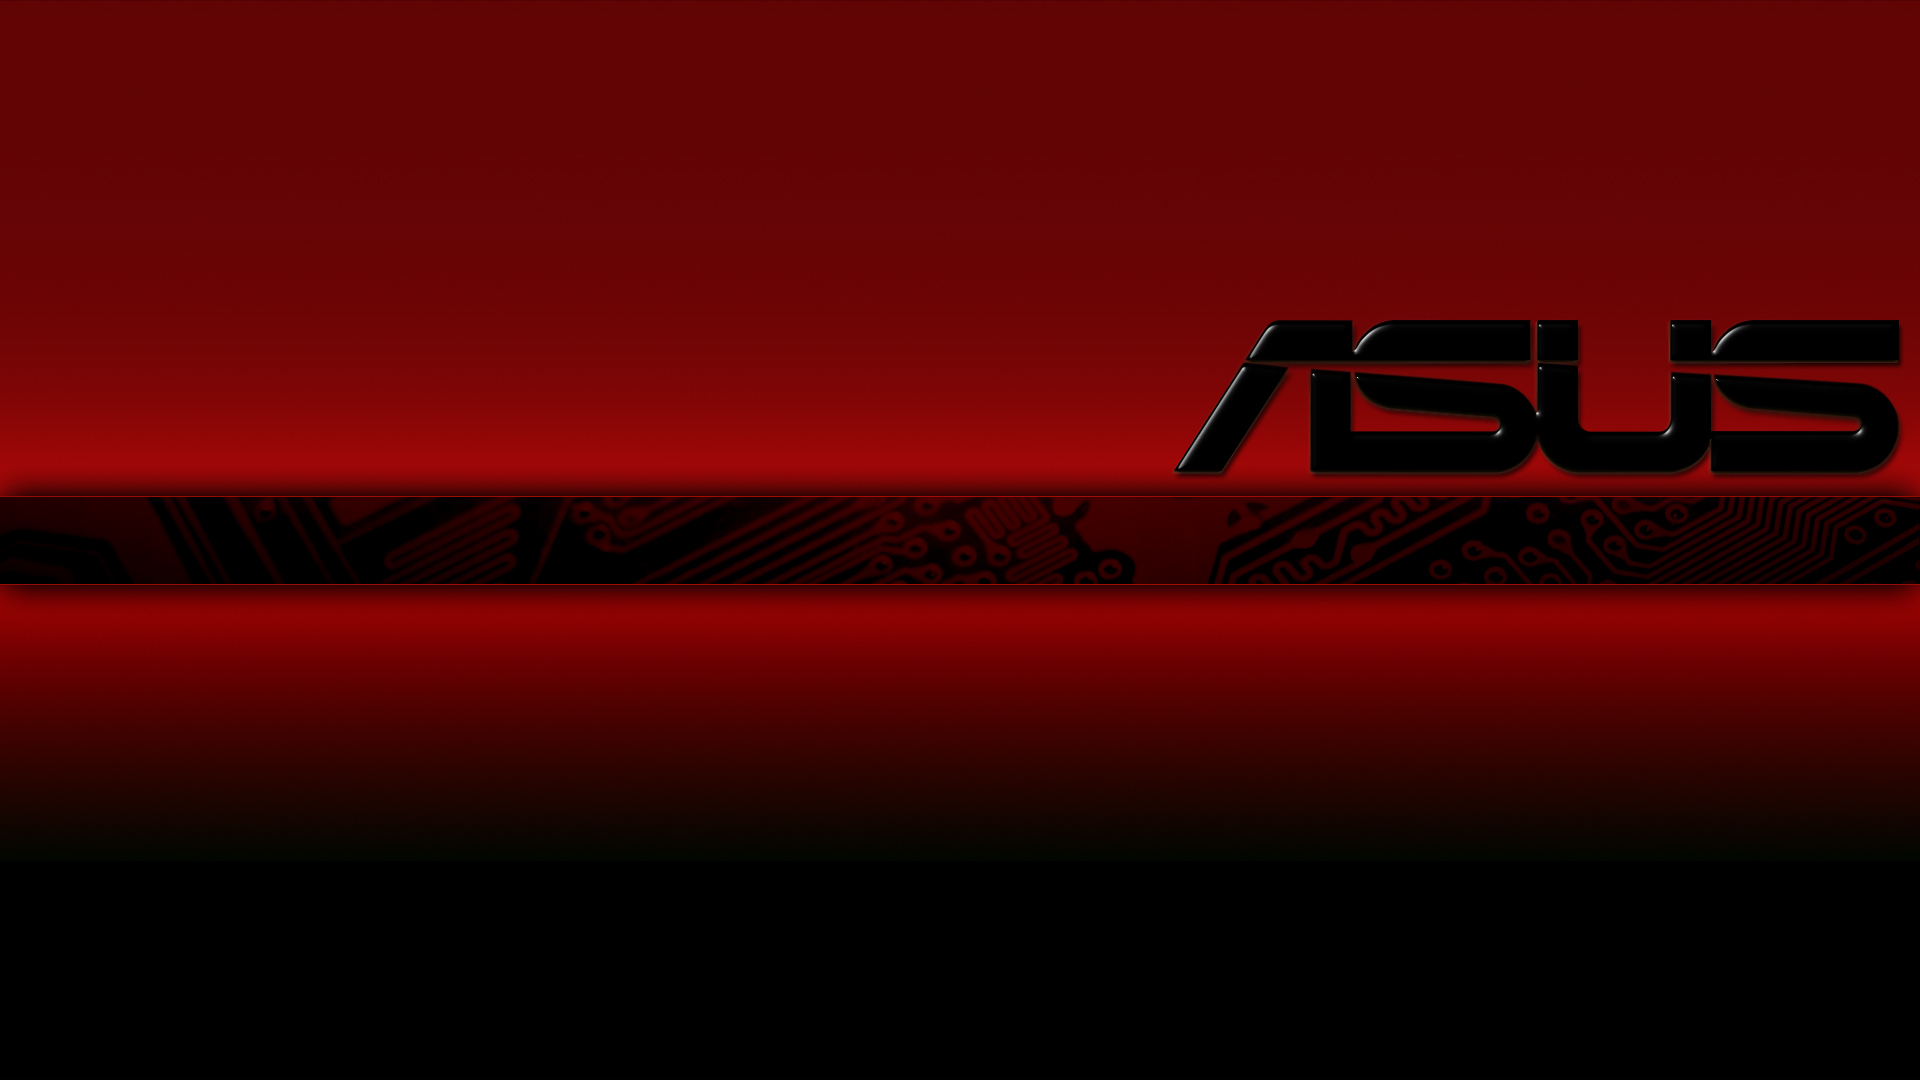 Asus Logo Hd Wallpaper And Top Widescreen Desktop From 1920x1080